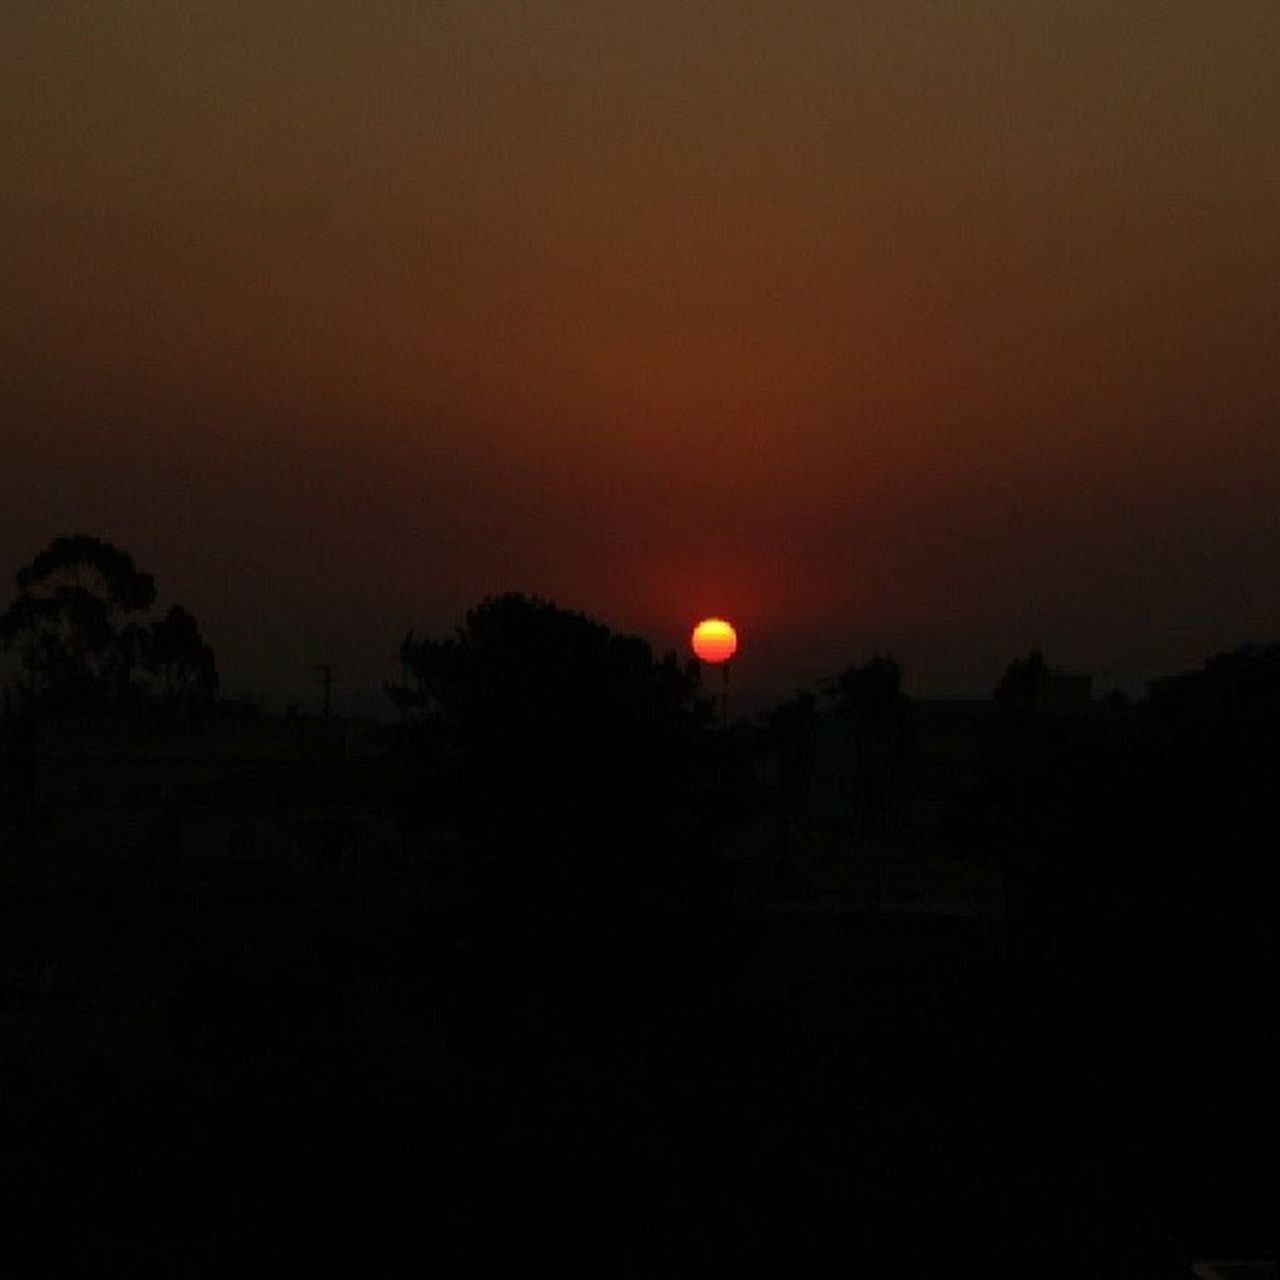 sunset, silhouette, tranquil scene, moon, scenics, no people, nature, tranquility, tree, night, outdoors, beauty in nature, landscape, sky, astronomy